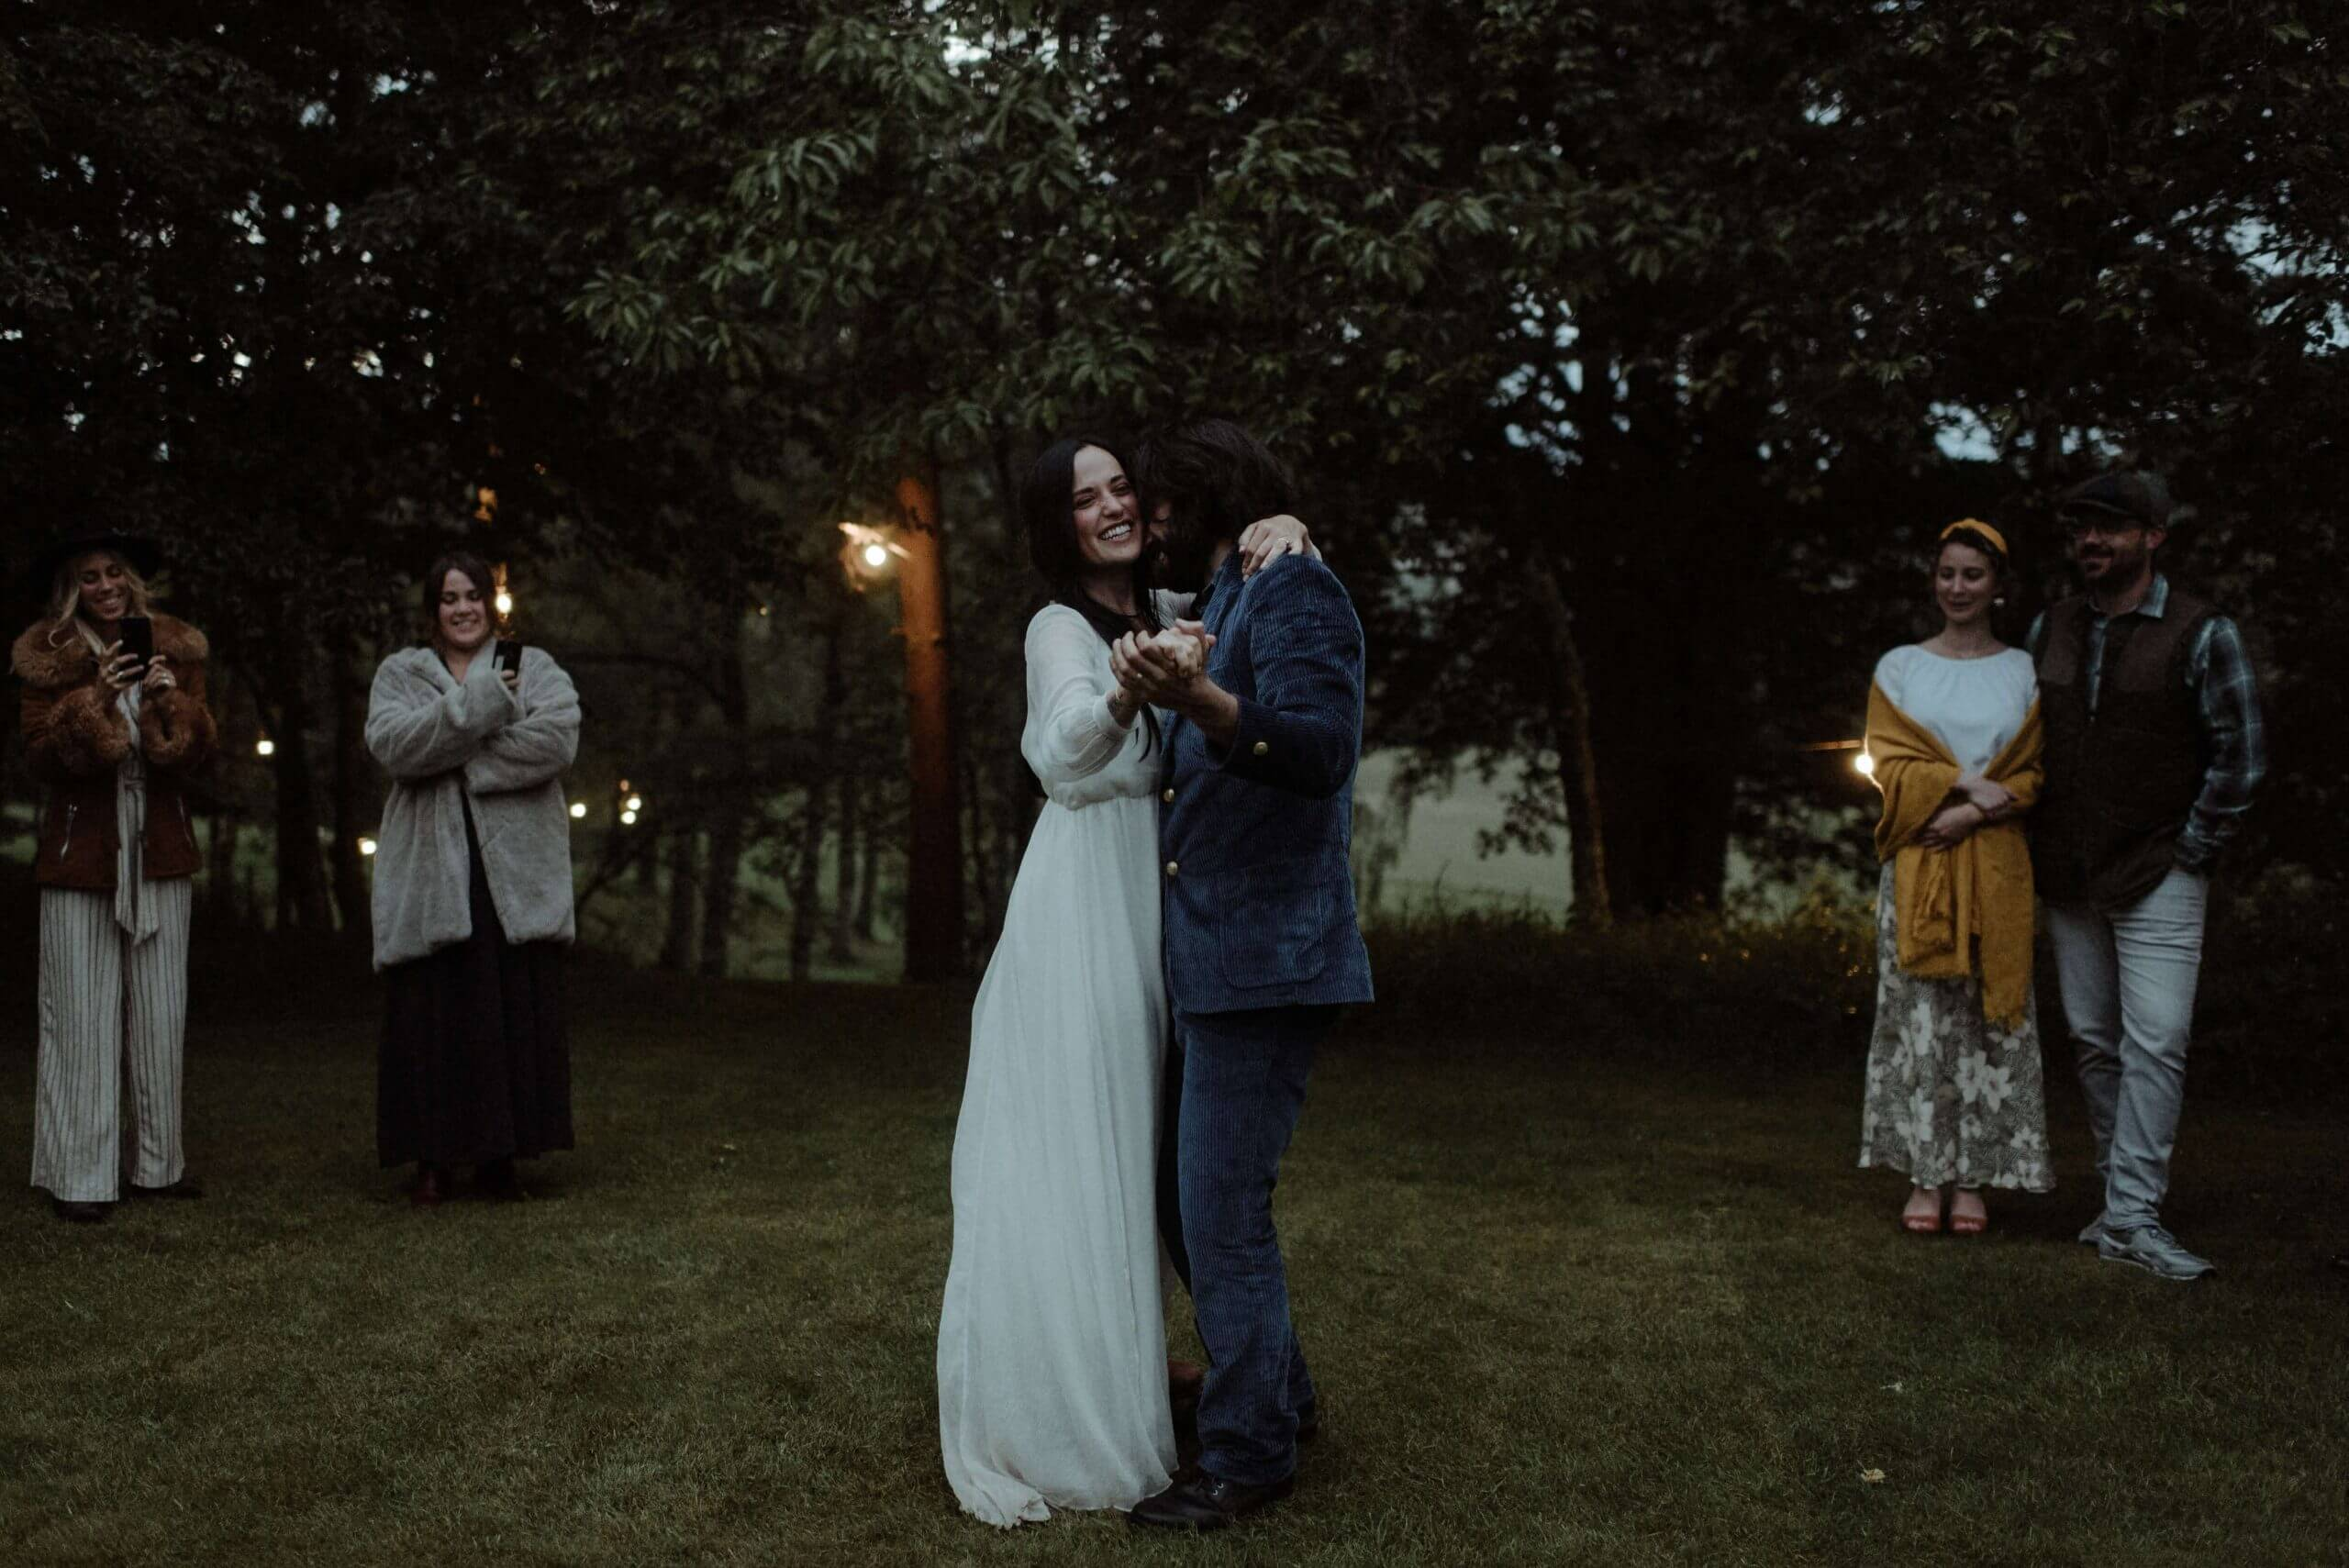 A Dreamy Destination Wedding in Scotland